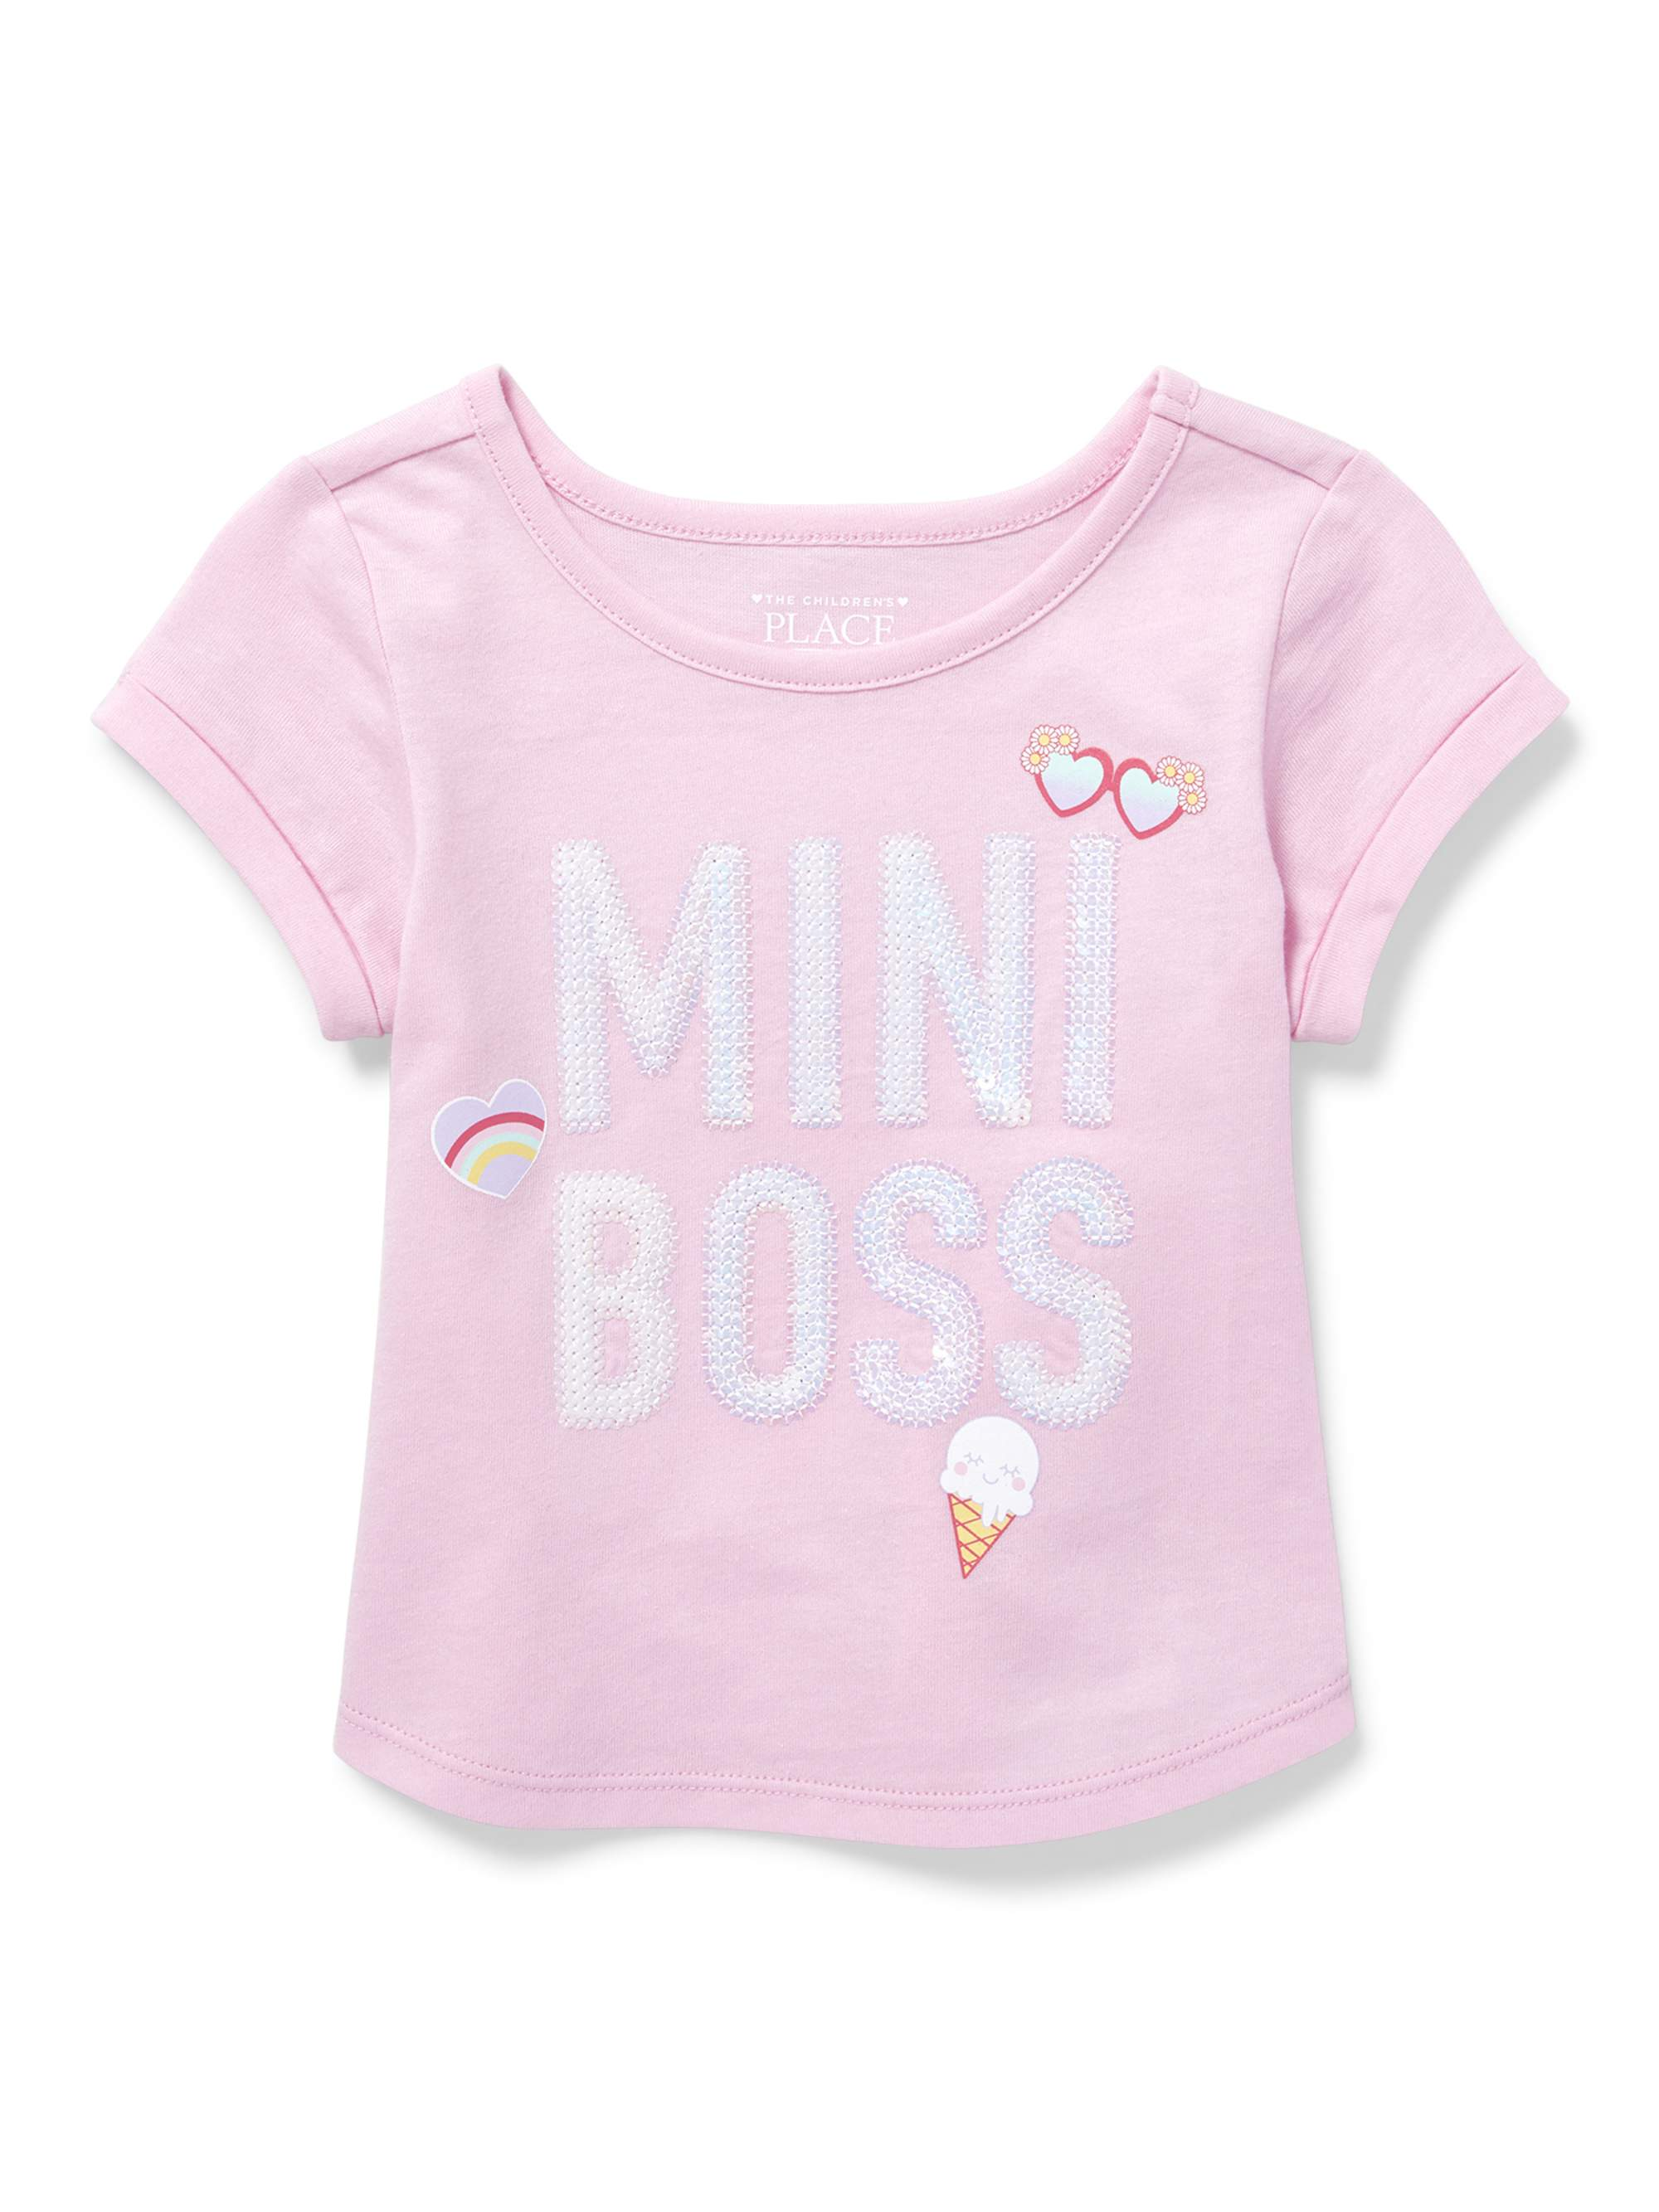 Short Rolled Sleeve Graphic Top (Baby Girls & Toddler Girls)